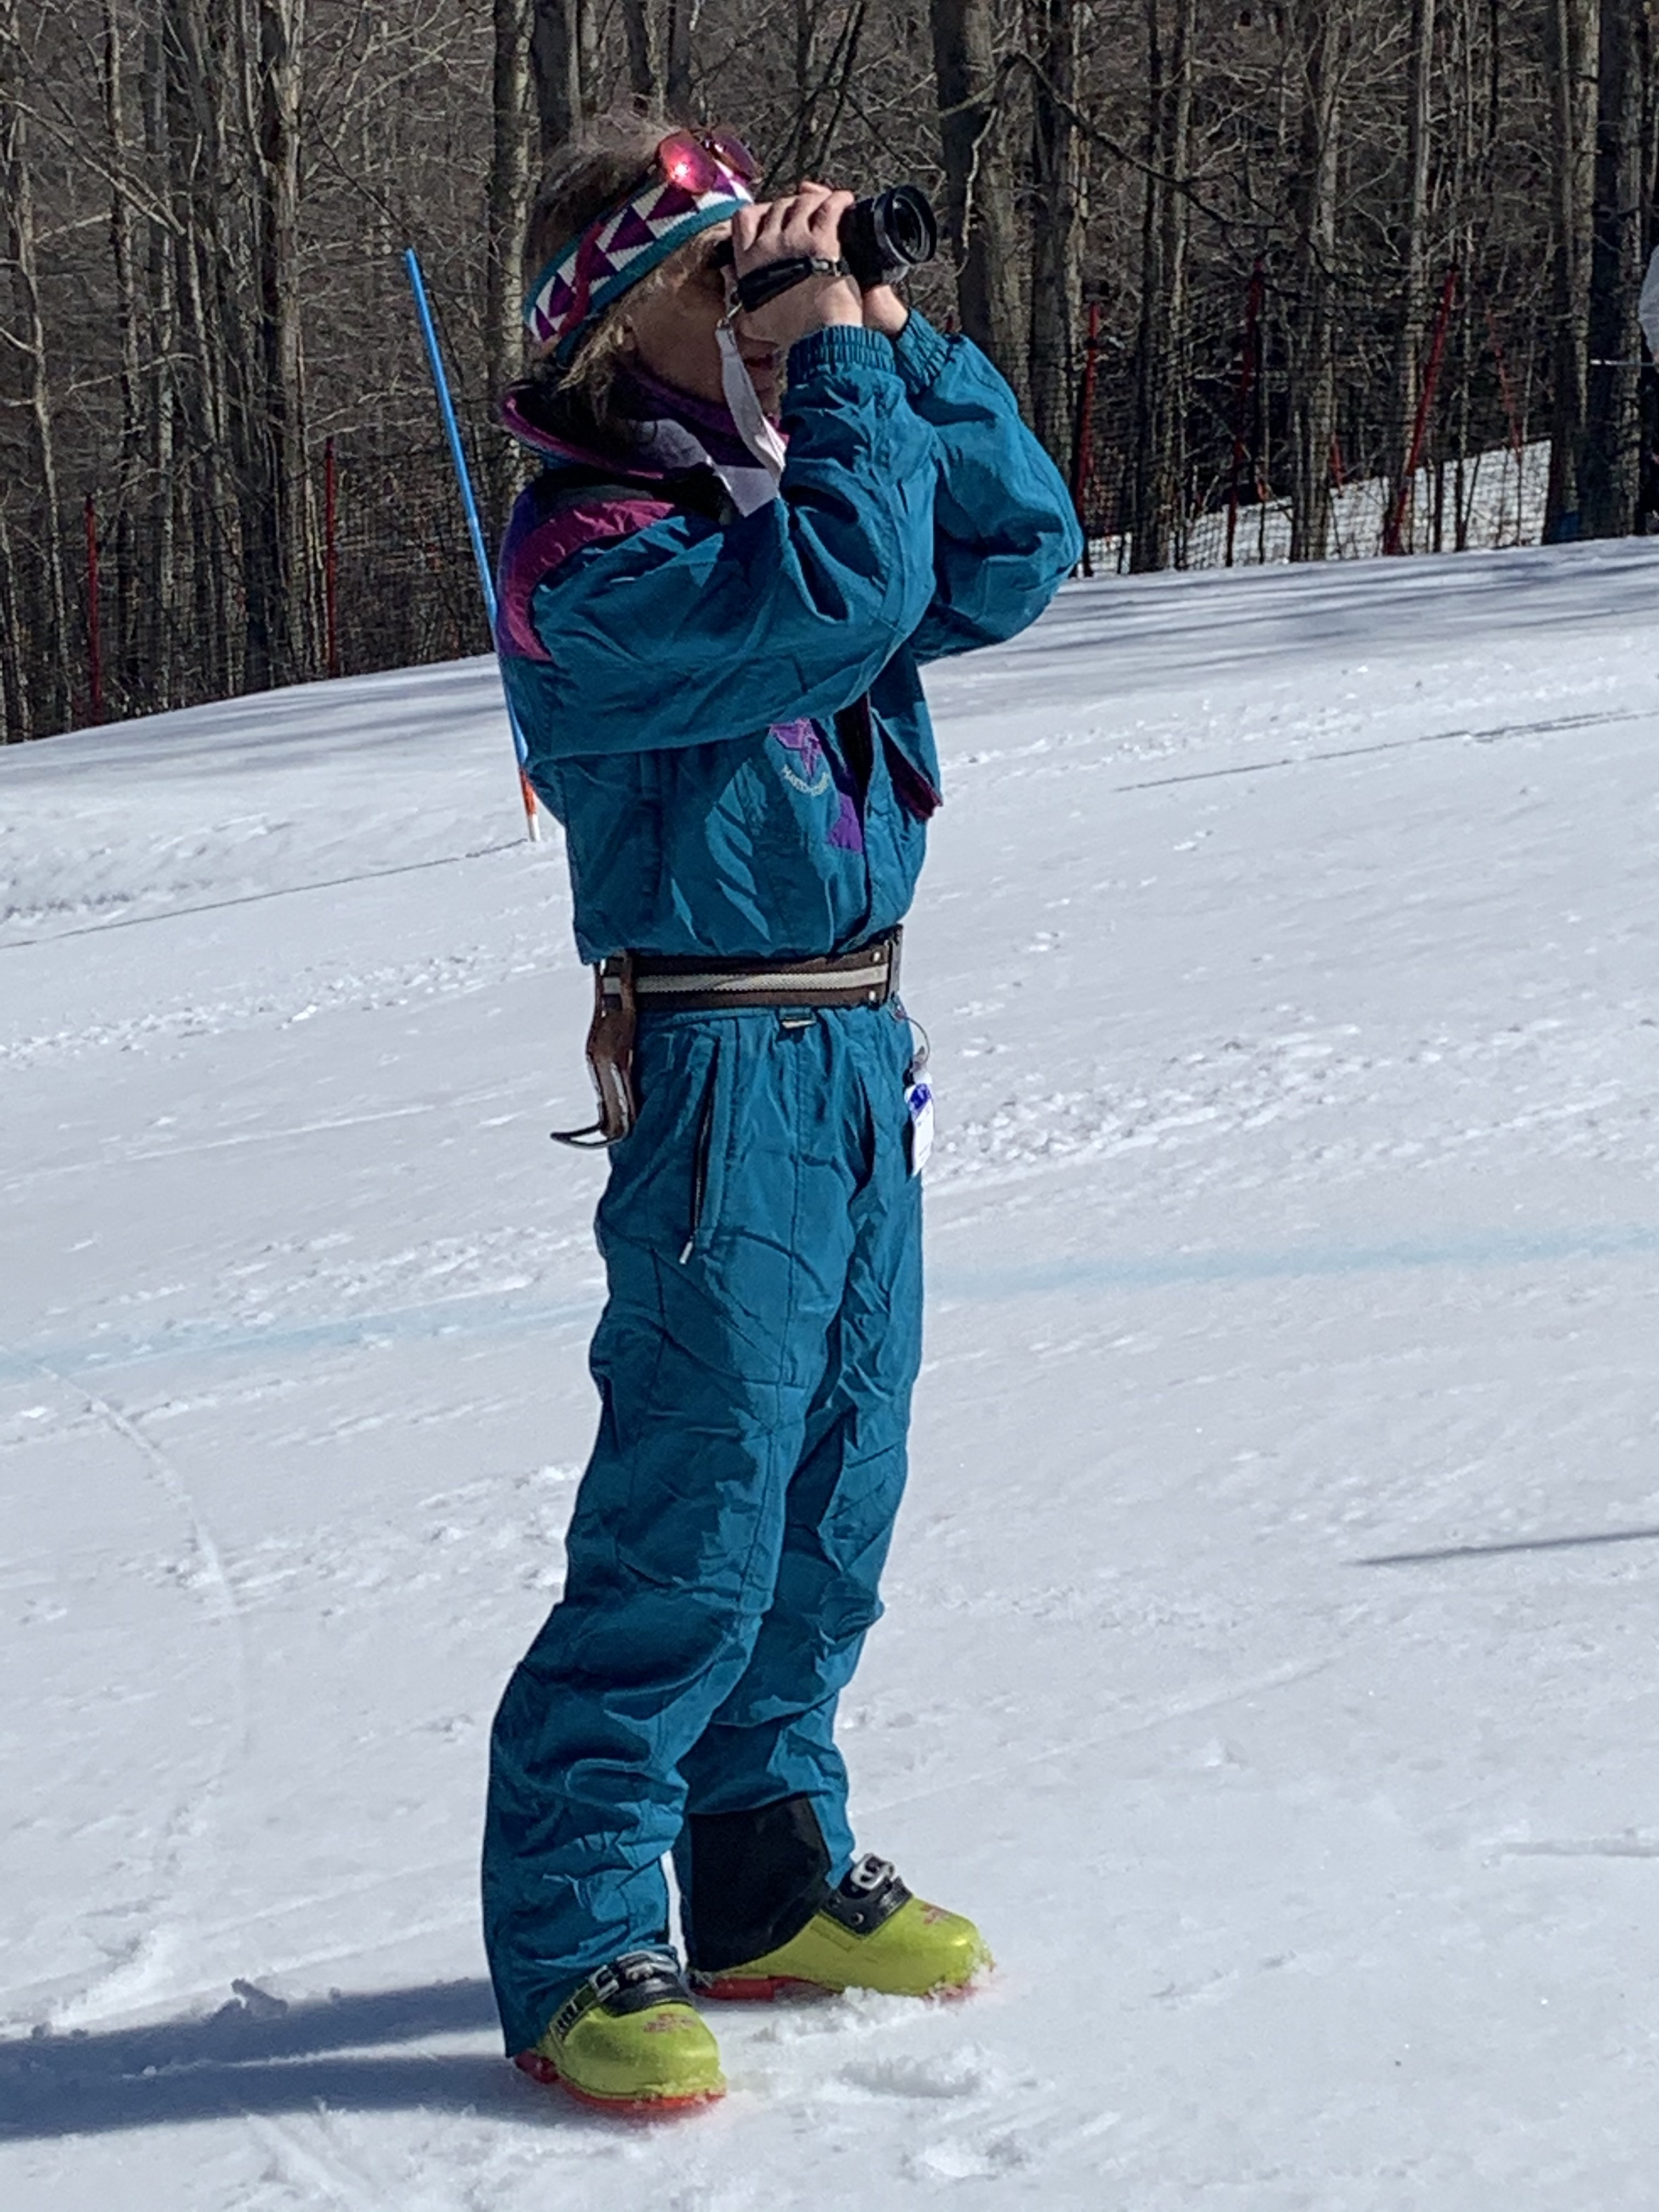 Fun spring skiing with costumes at our spring fest!